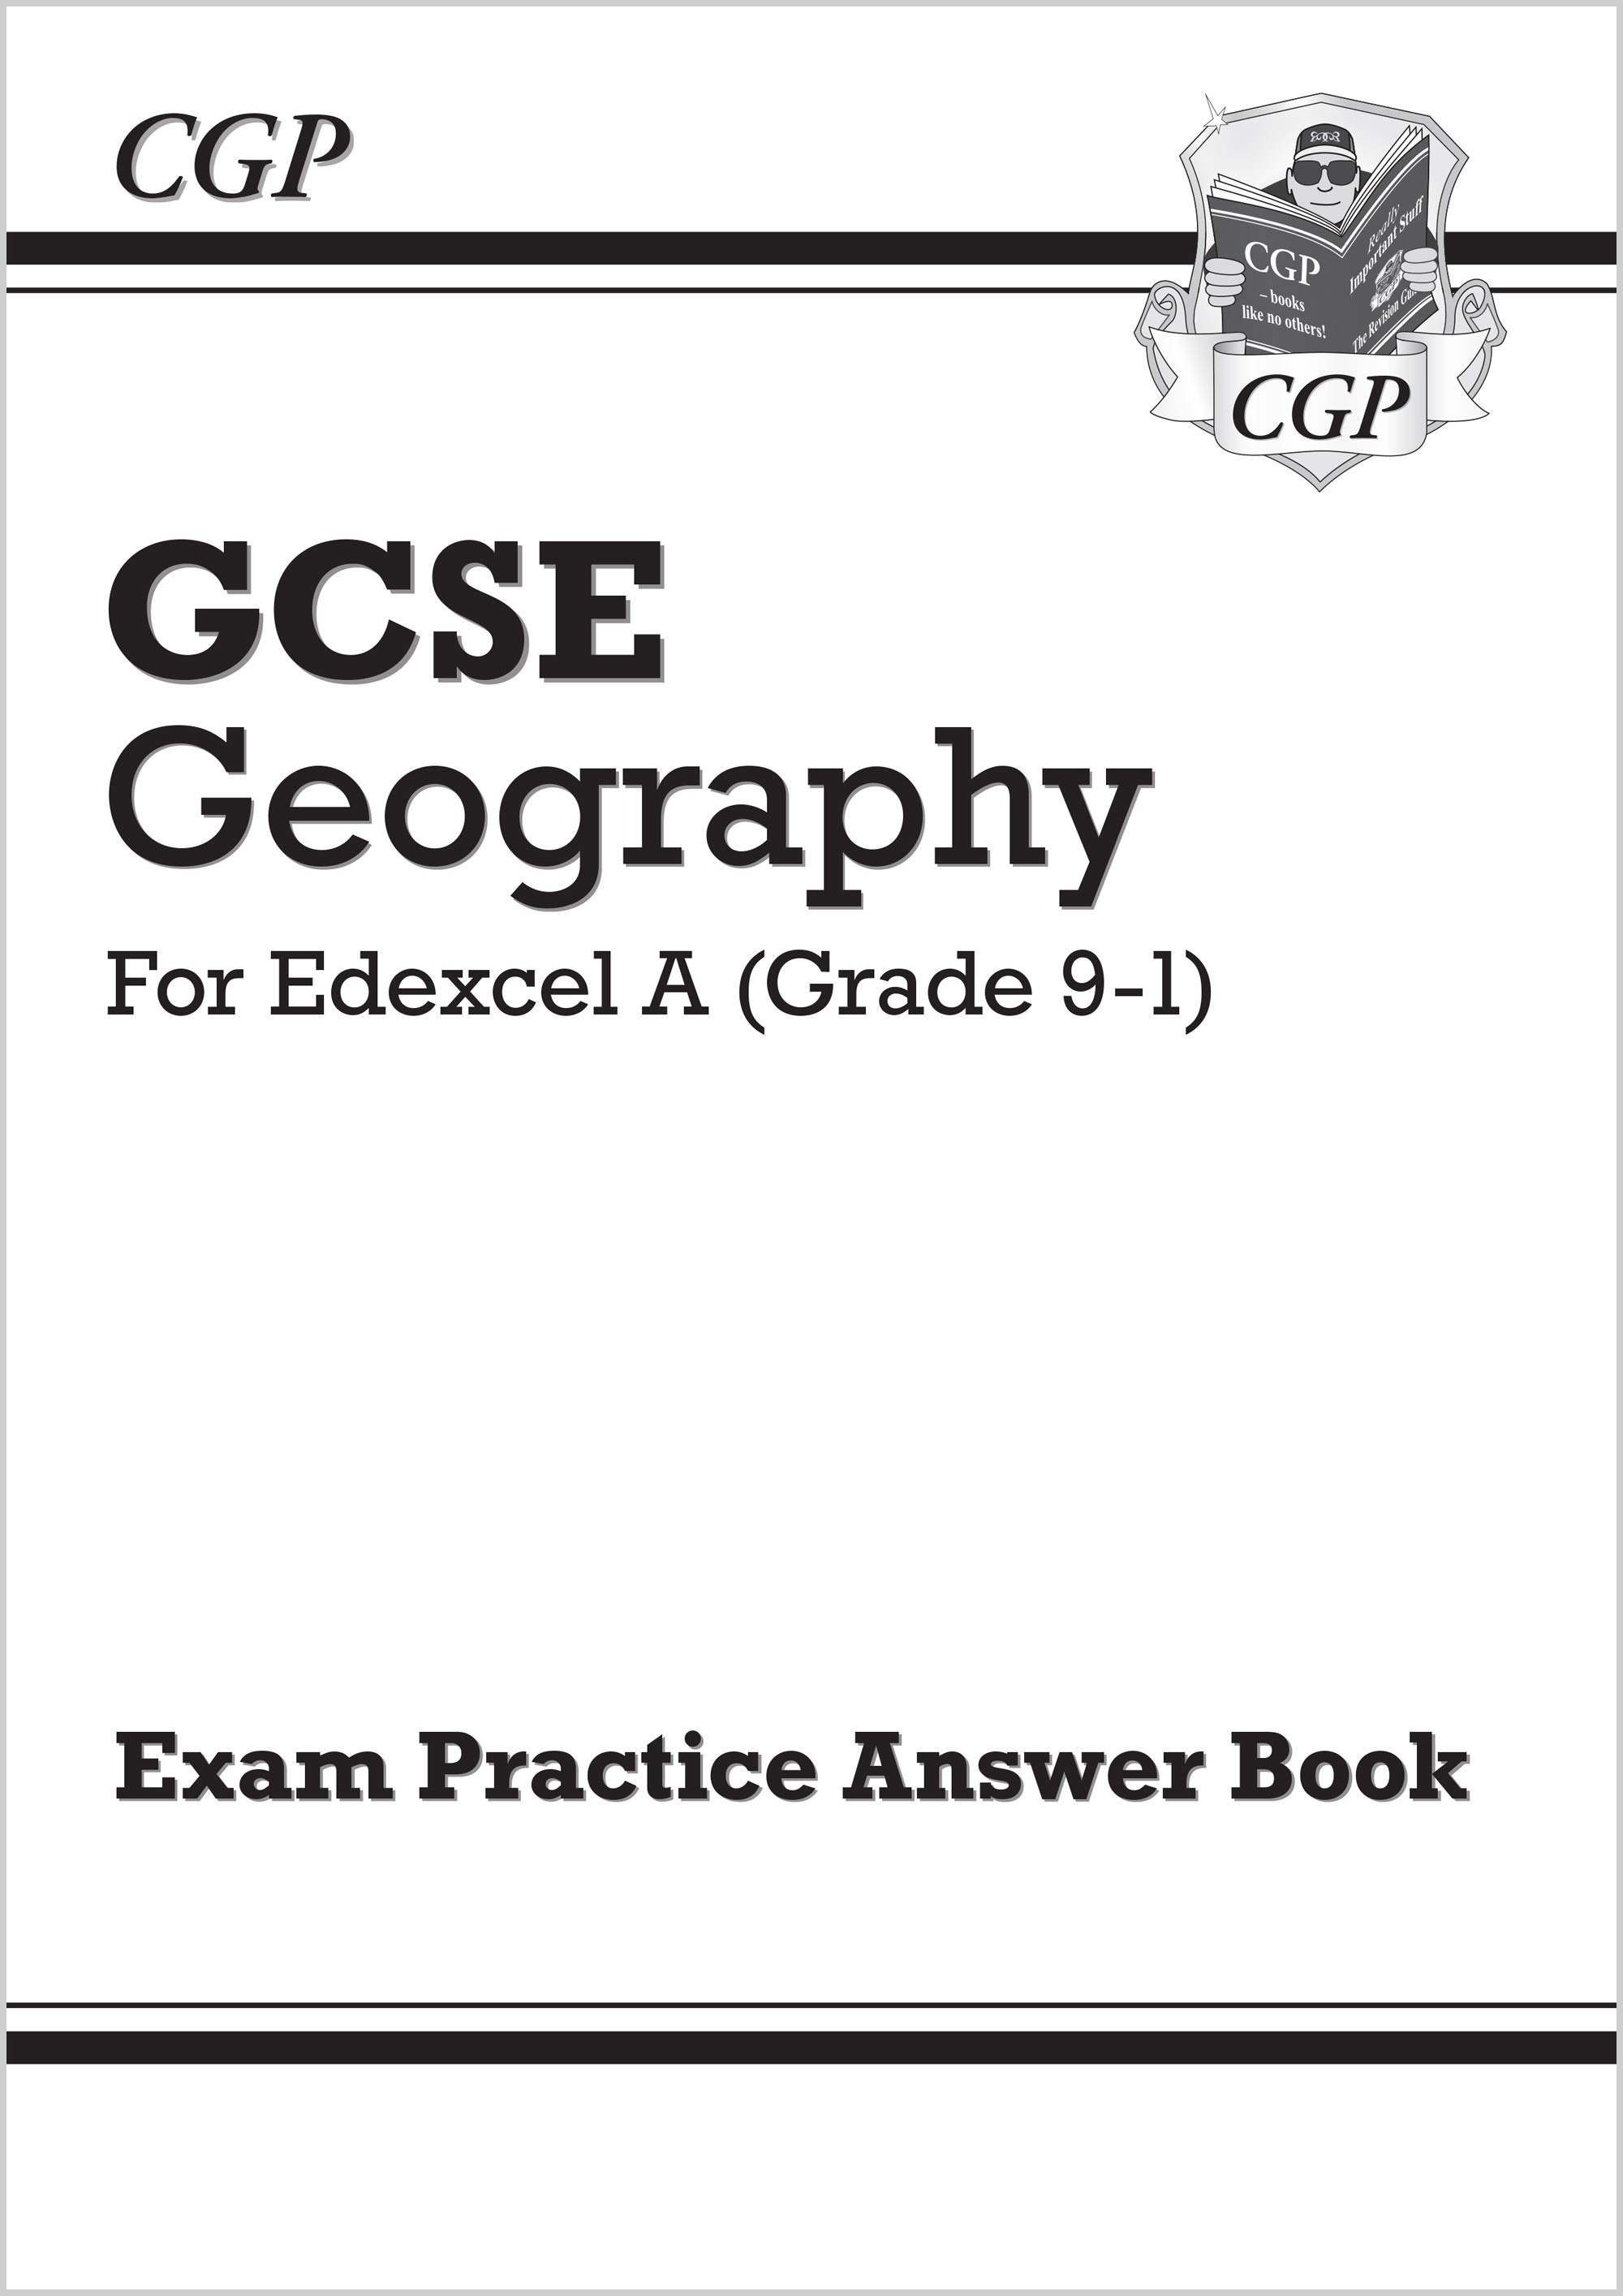 GEAQA41 - Grade 9-1 GCSE Geography Edexcel A - Answers (for Exam Practice Workbook)